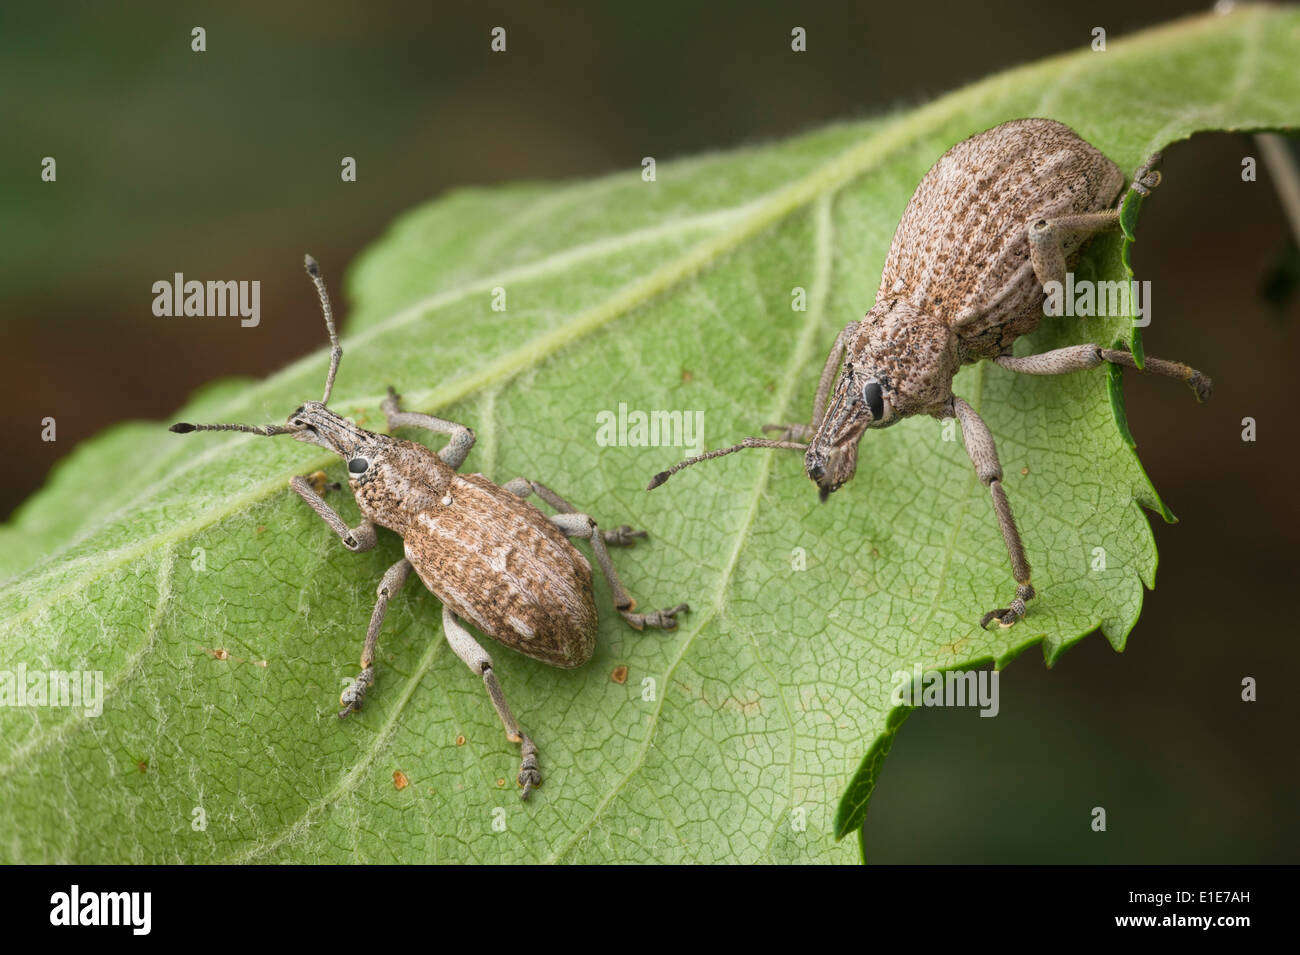 Fruit-tree root weevil, also known as apple root borer, is a native insect of Australia - Stock Image